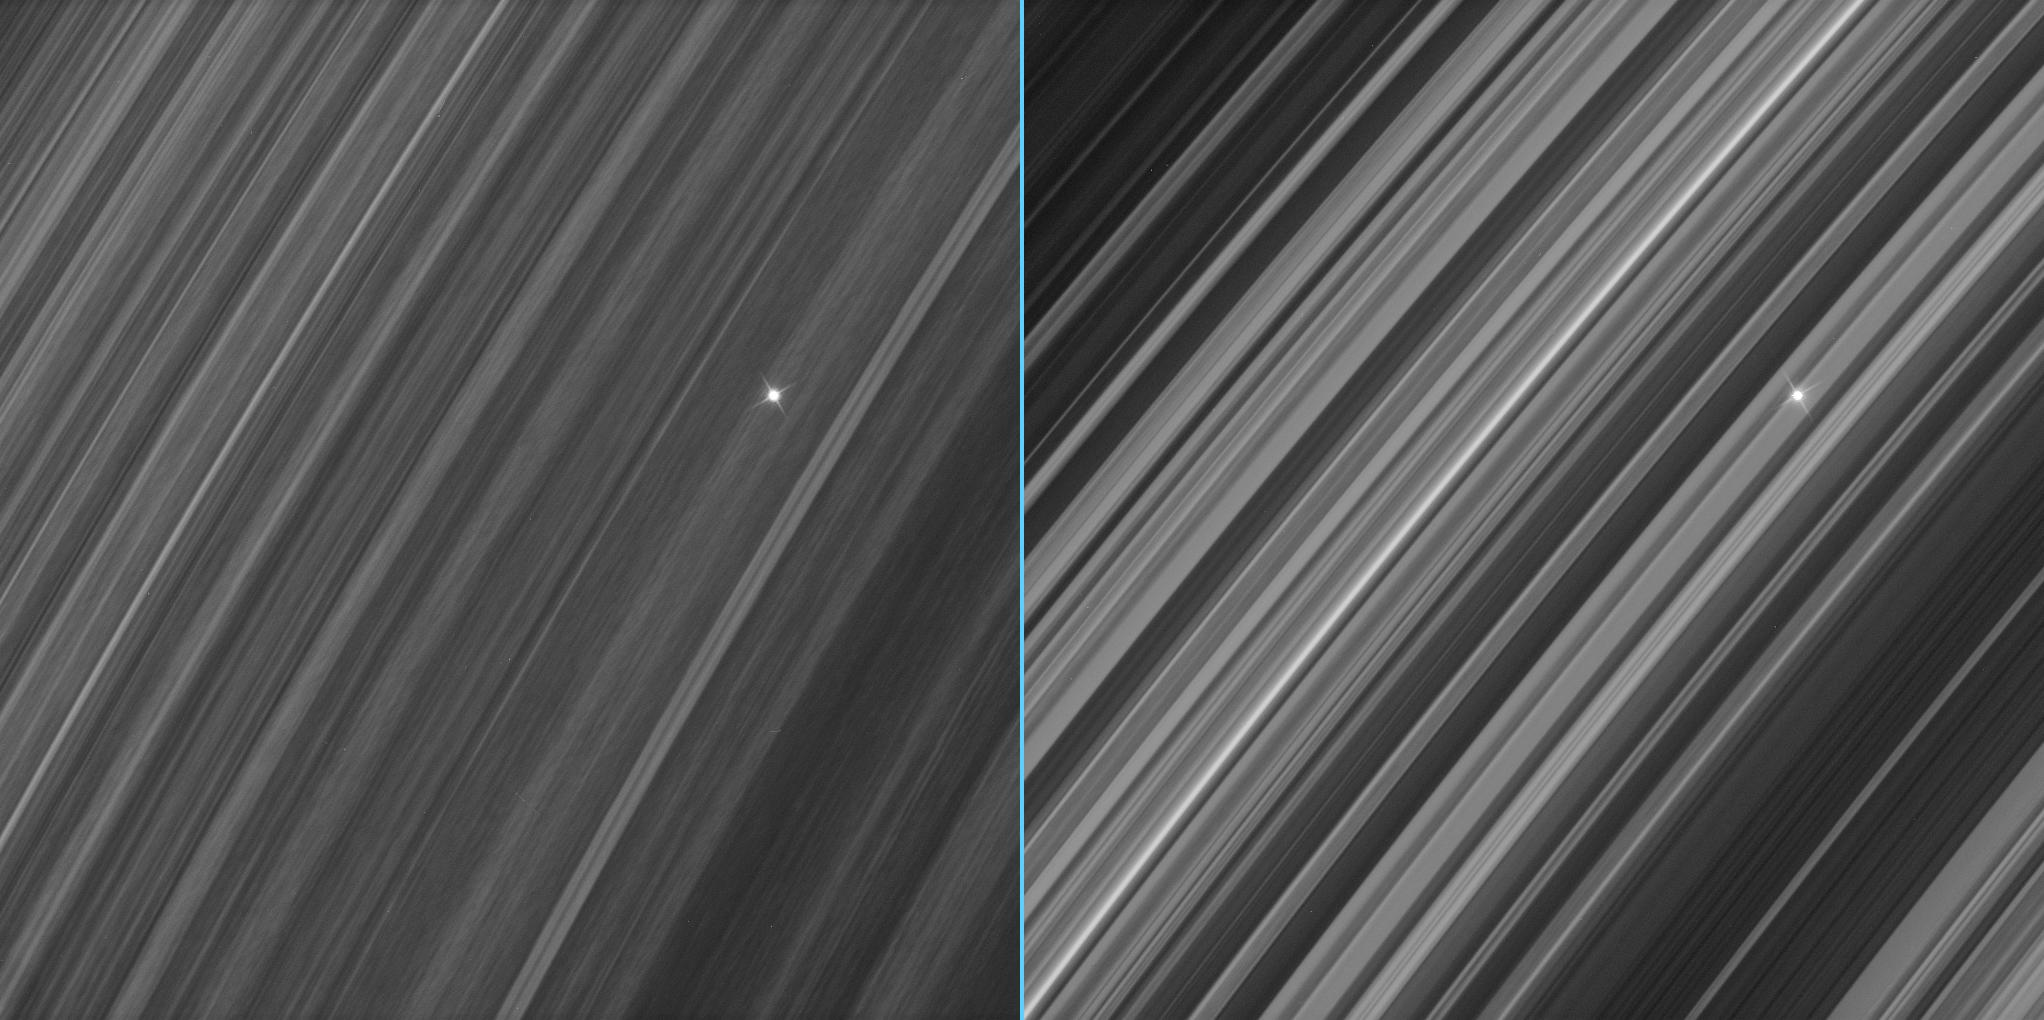 Side-by-side views of a star seen through Saturn's B ring